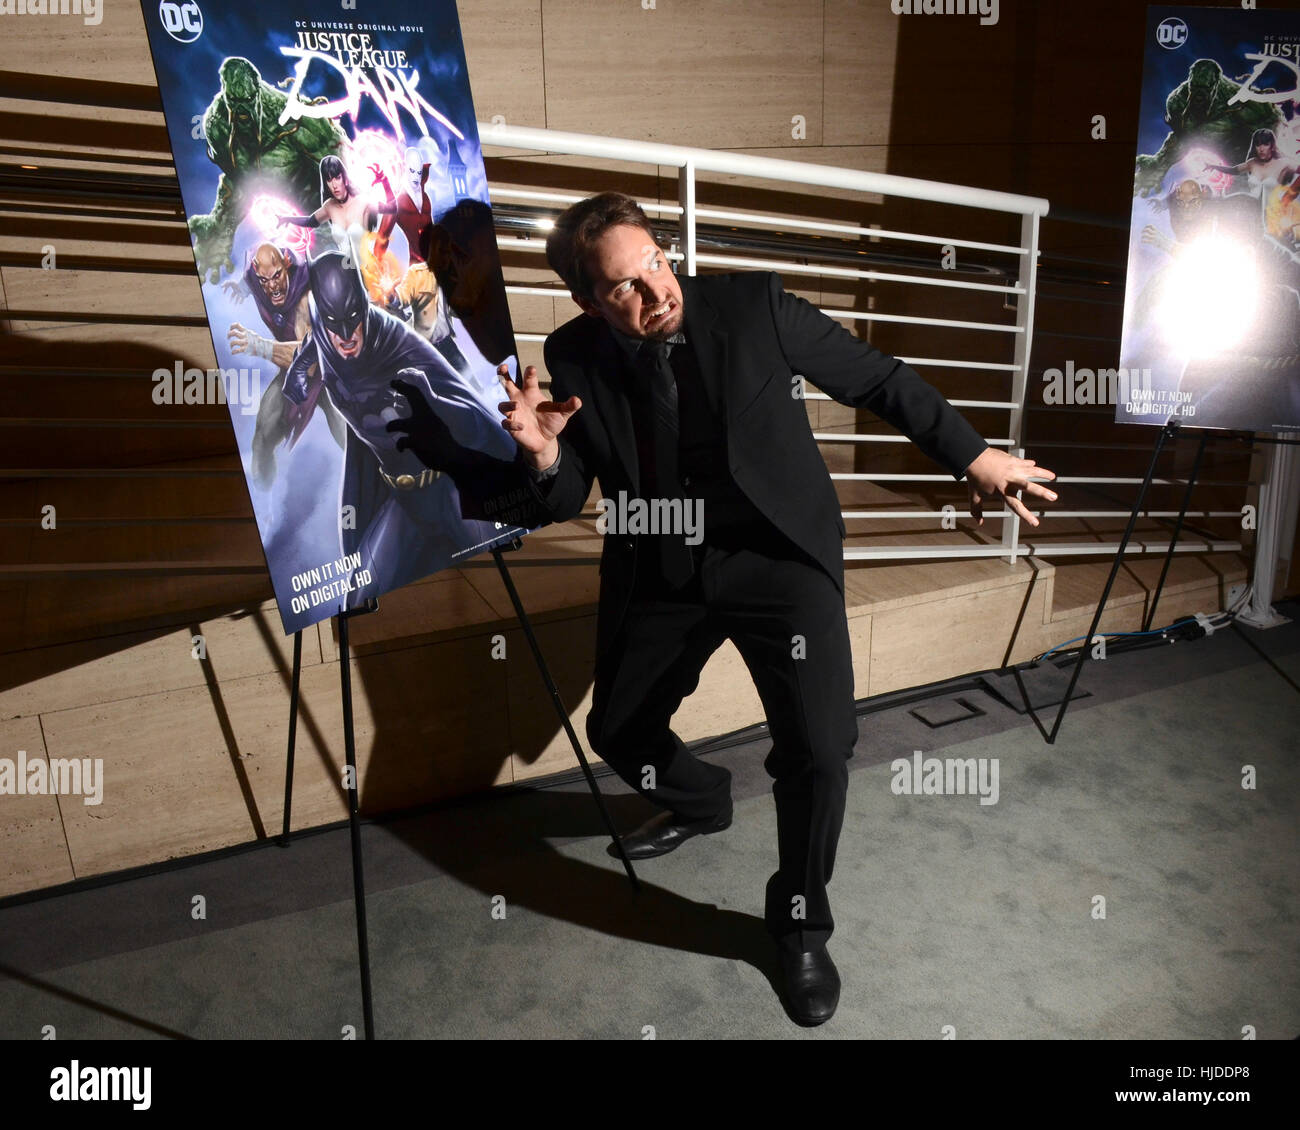 Los Angeles, USA. 23rd Jan, 2017. Ray Chase attends premiere of Warner Home Movies' 'Justice League Dark' - Stock Image